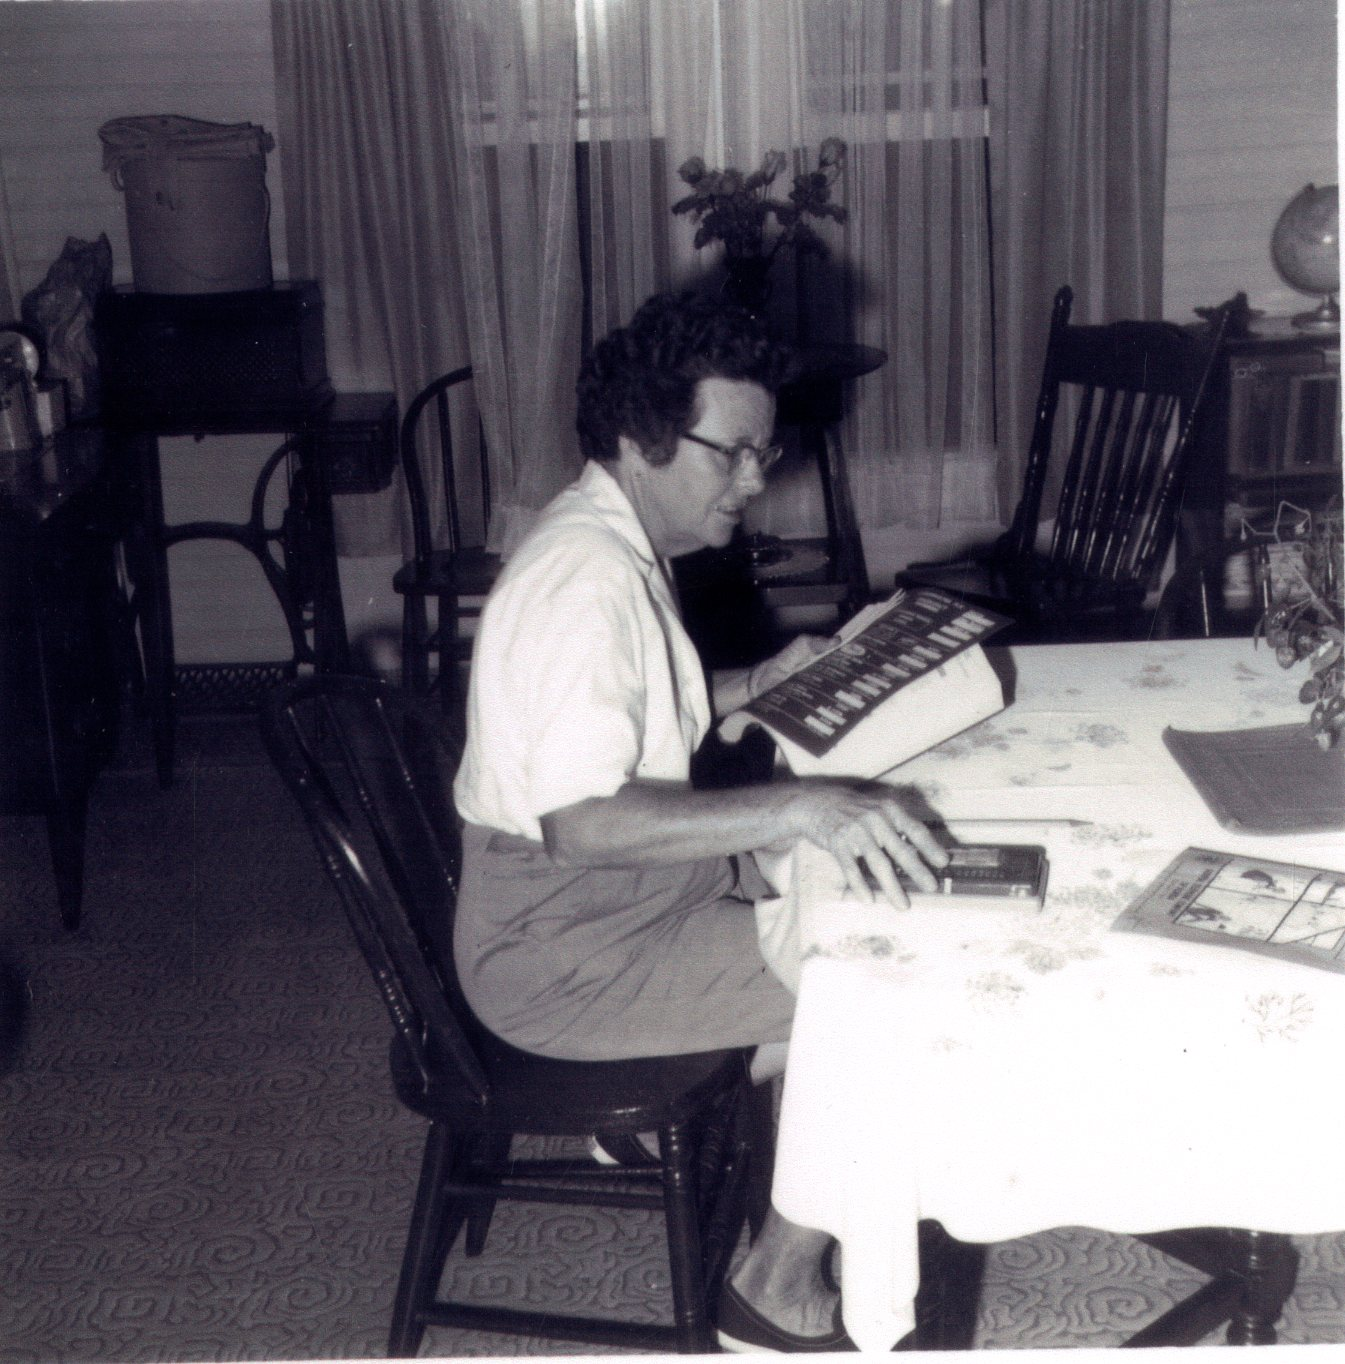 Bernice Fullop Van Hooser in the dining room of the Greenwood House, Clearwater, Florida, circa 1961.